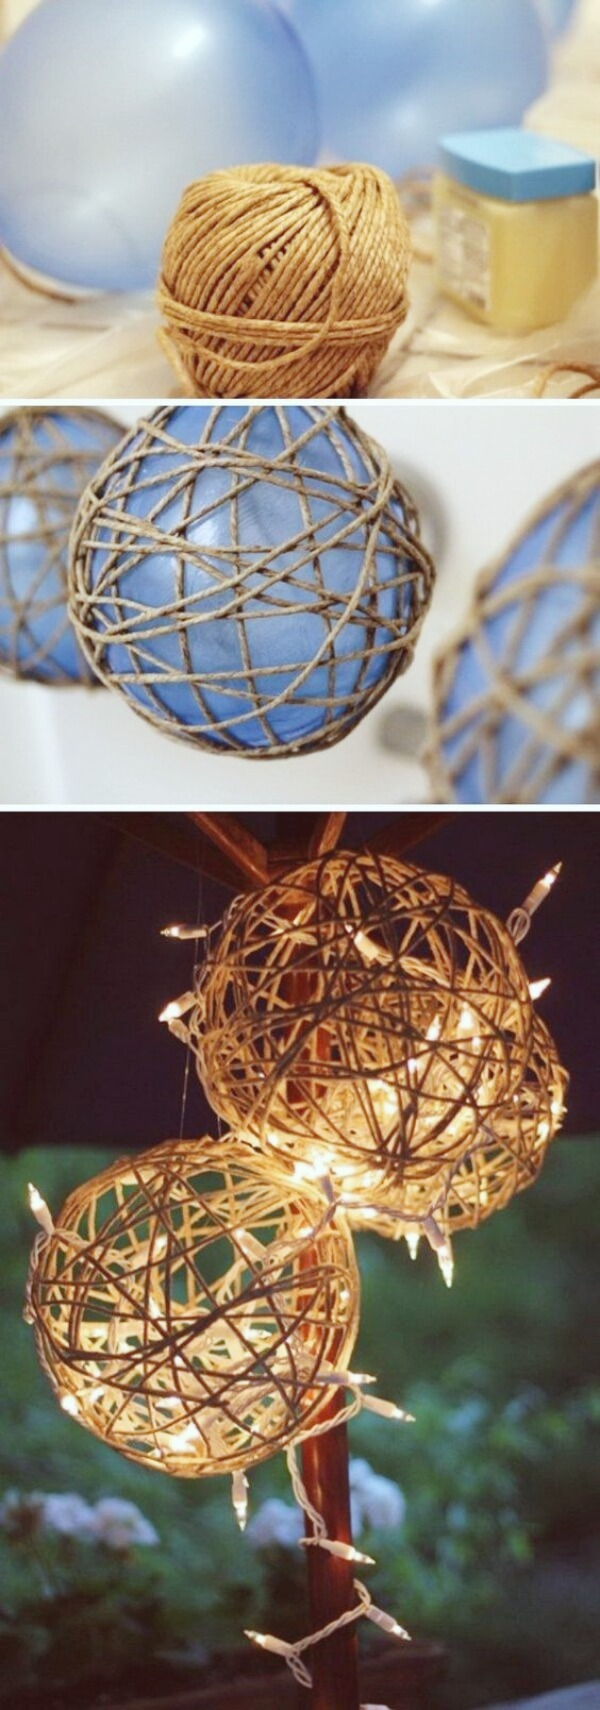 Light Balls | Creative DIY Garden Lantern Ideas - FarmFoodFamily.com